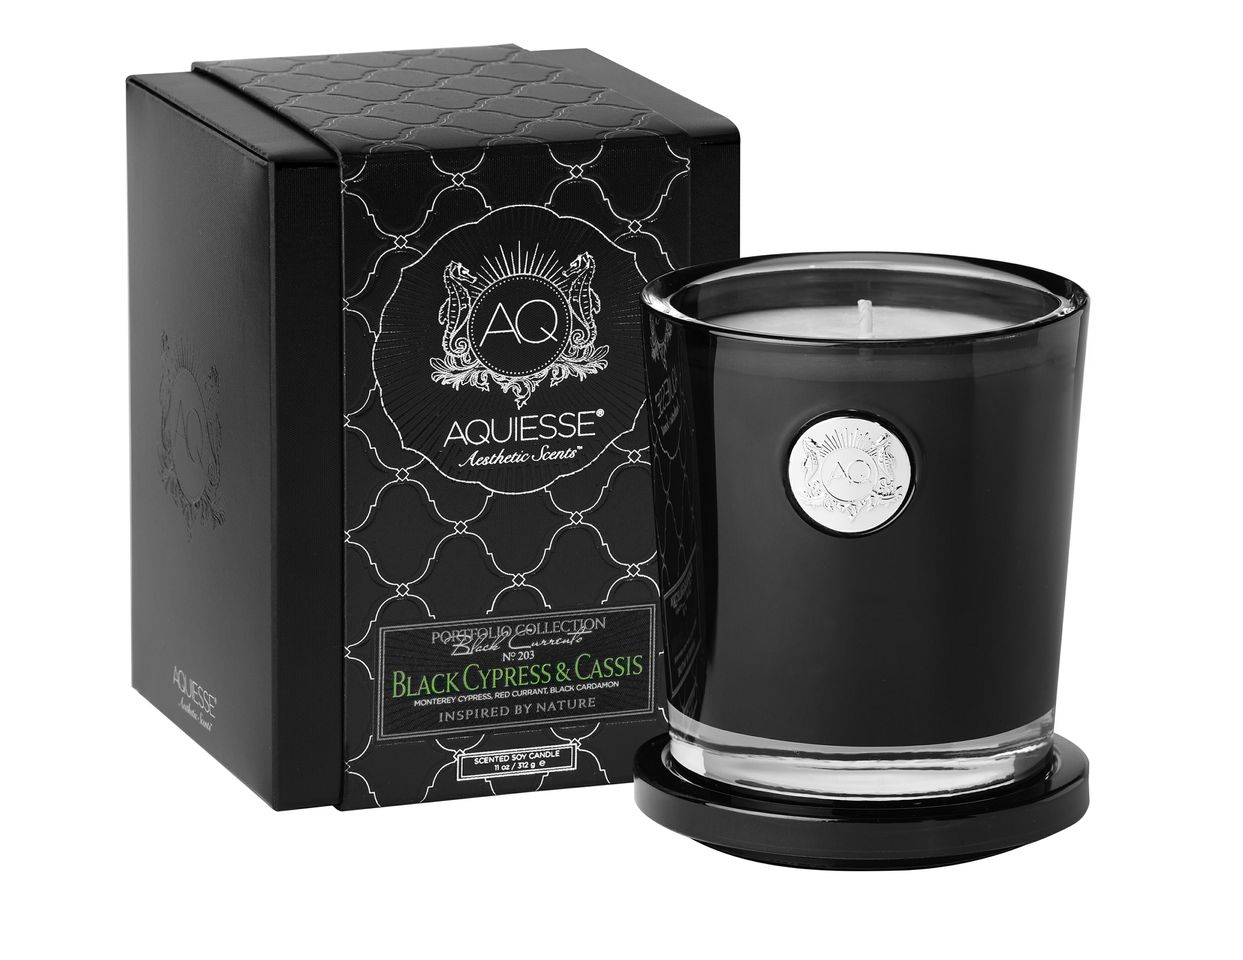 Black Cypress & Cassis Candle in Glass - Aquiesse